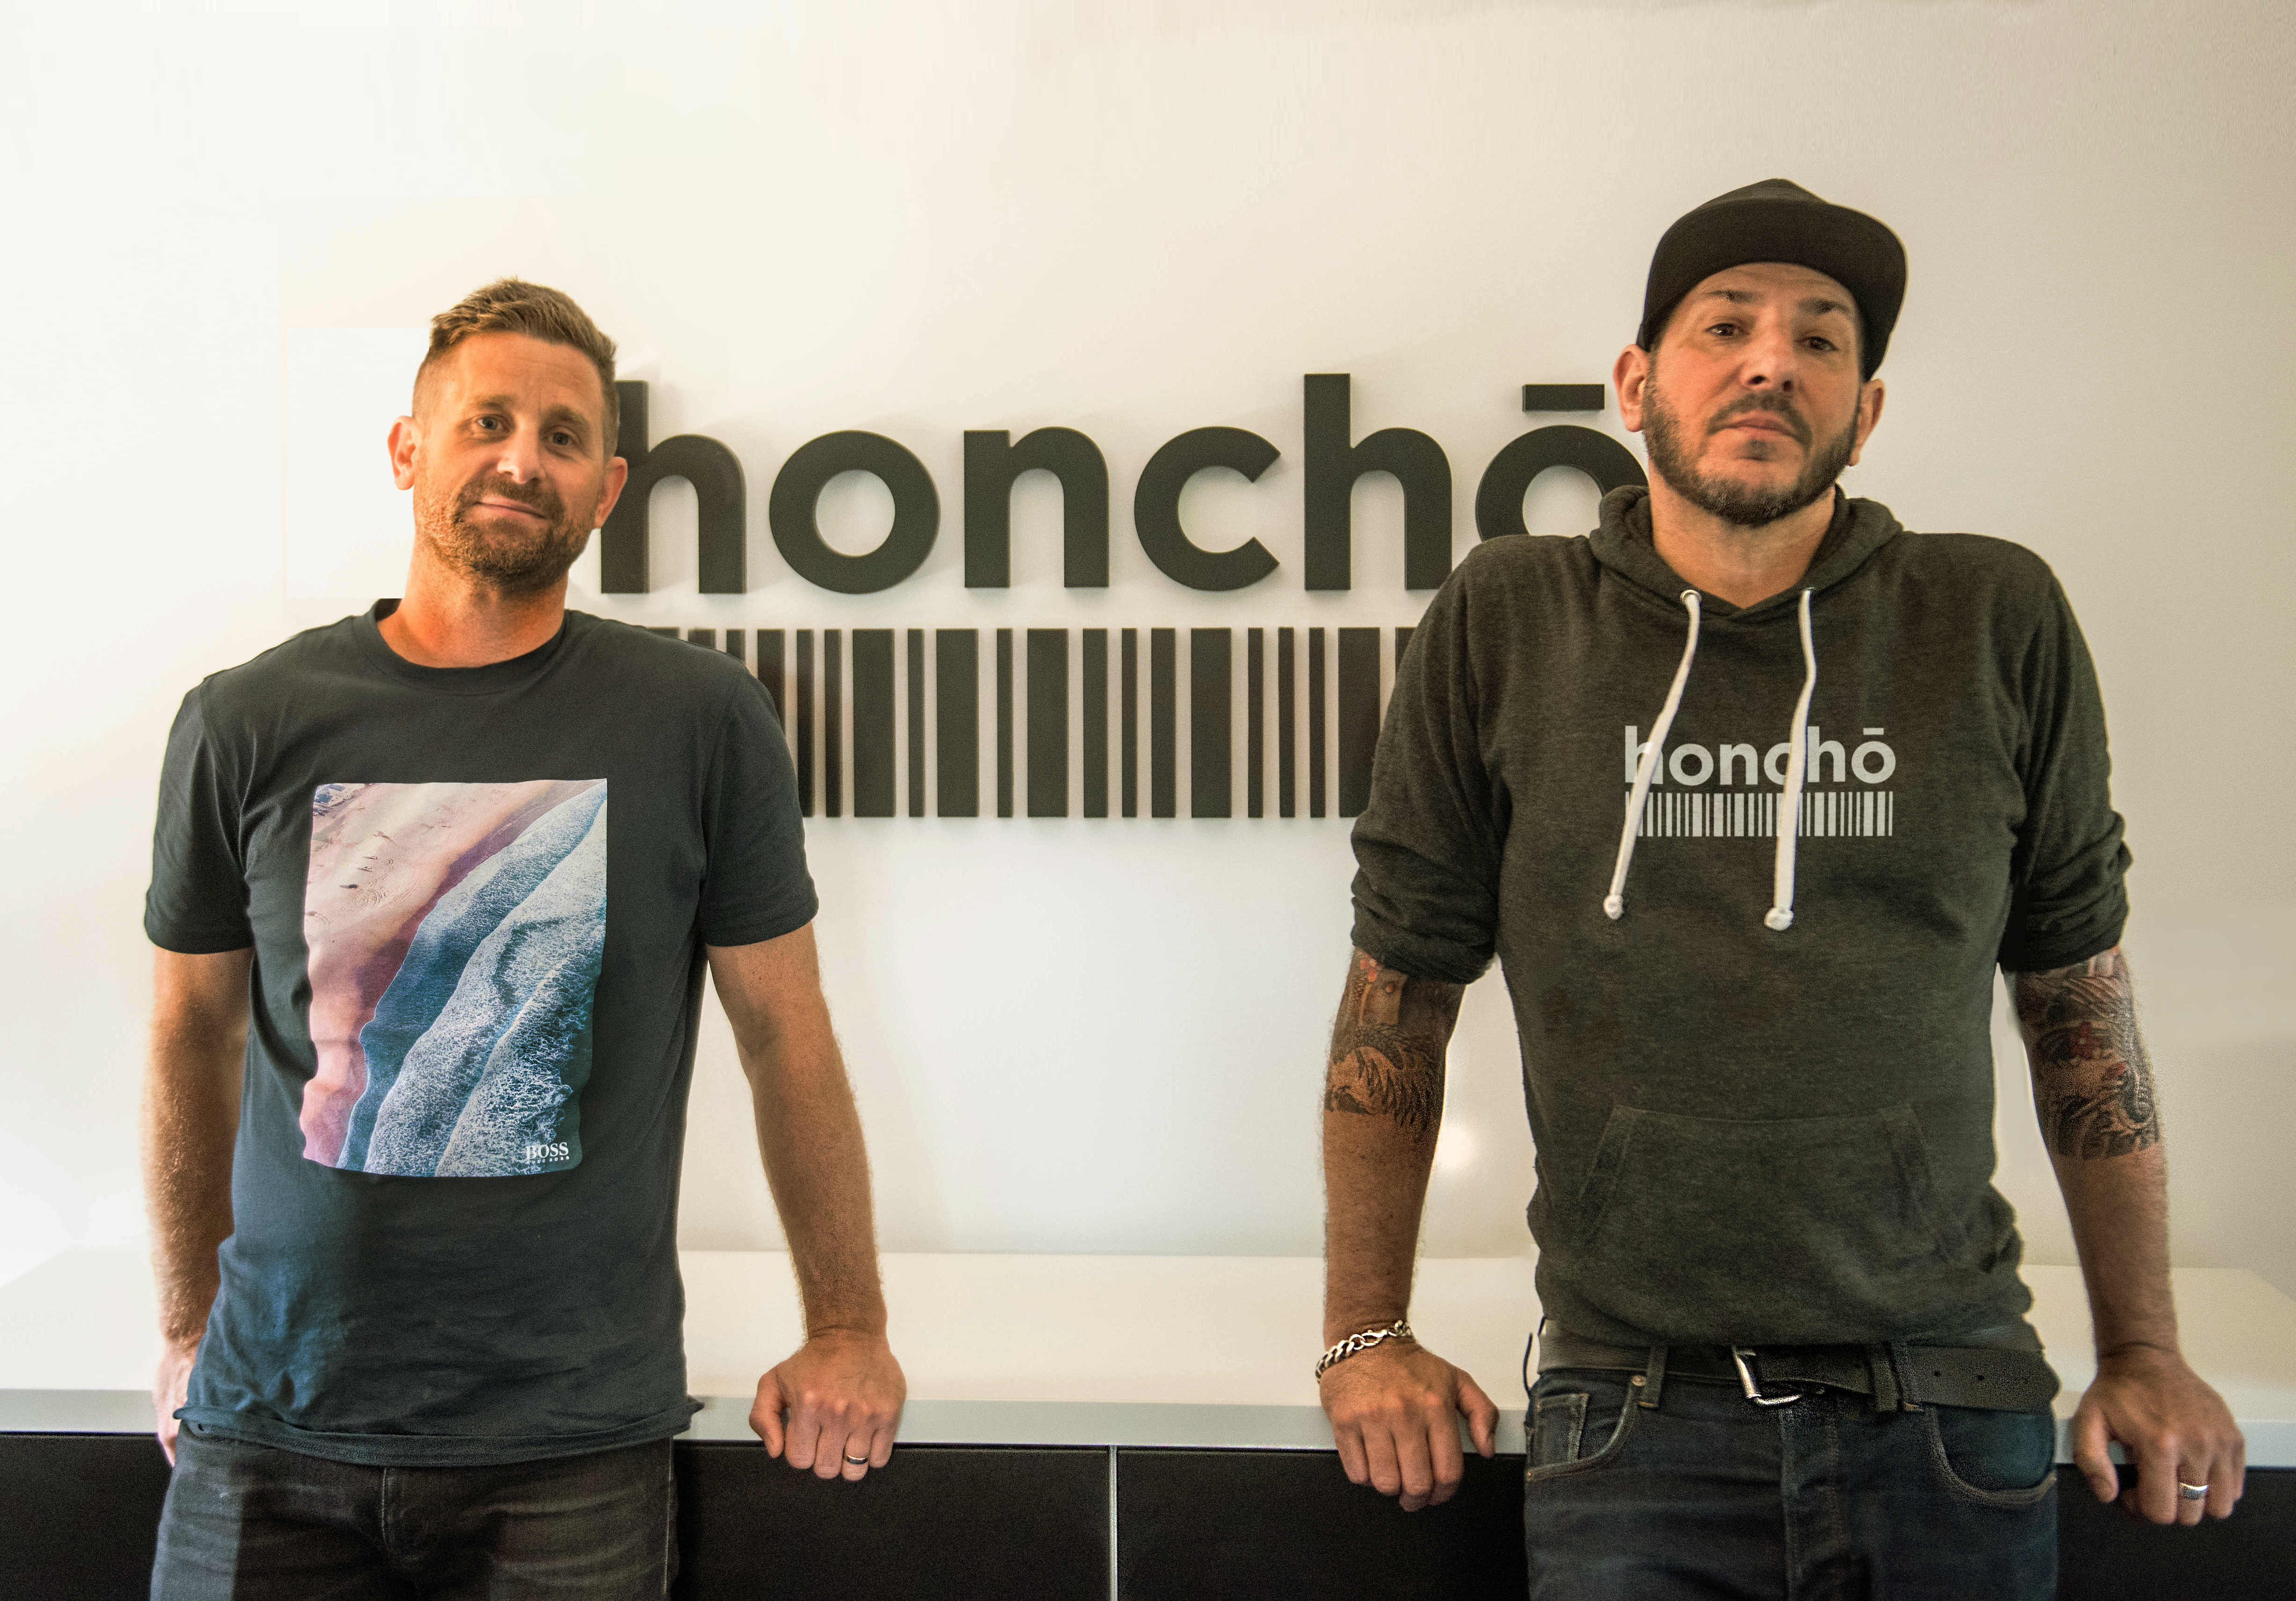 Chris Ailey and Kevin Russell - Honchō